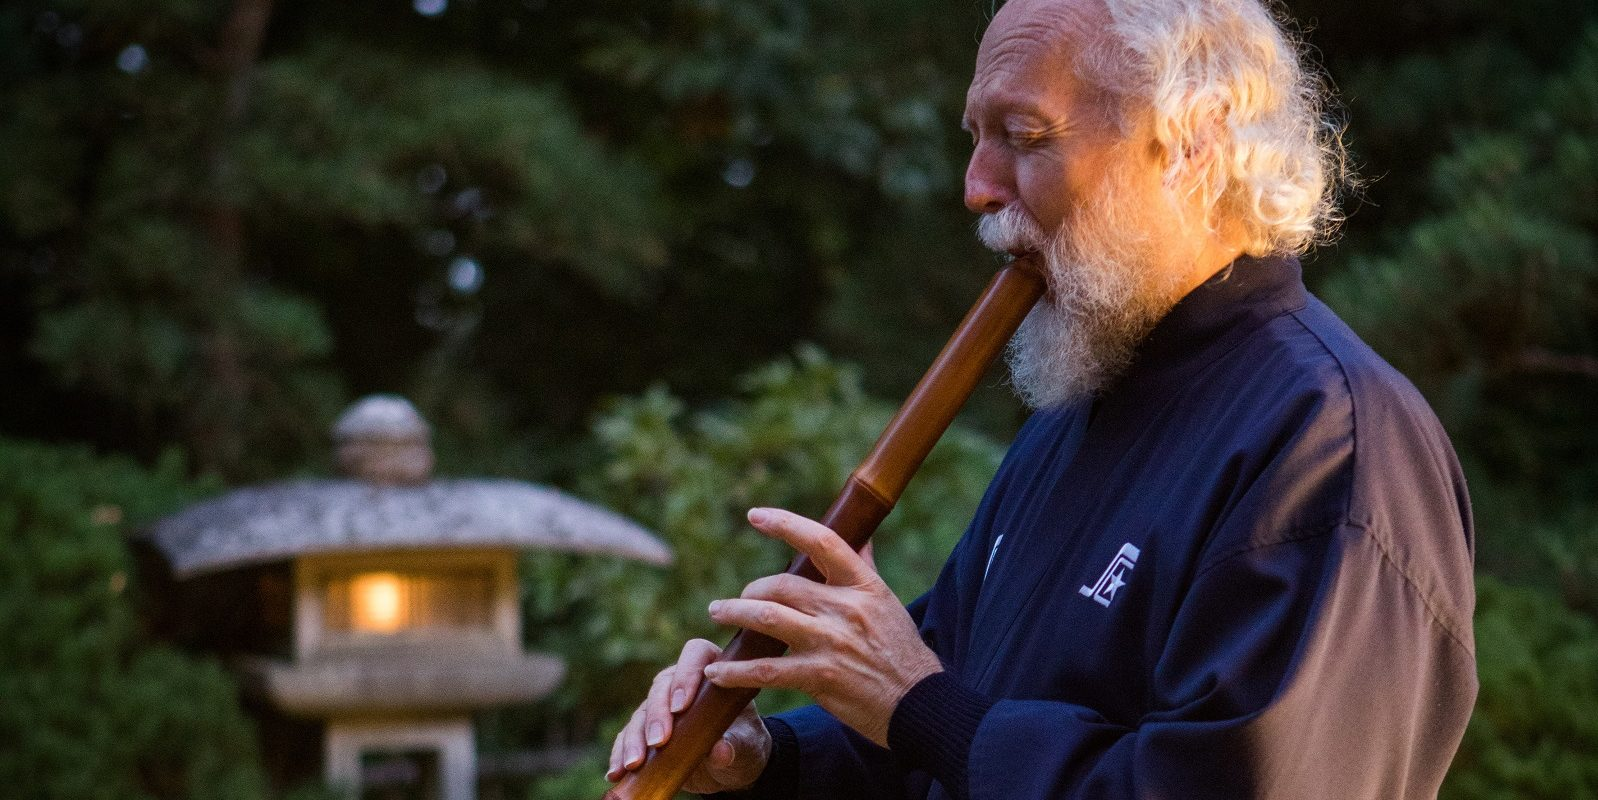 Larry Tyrrell performing shakuhachi at the Moonviewing Festival